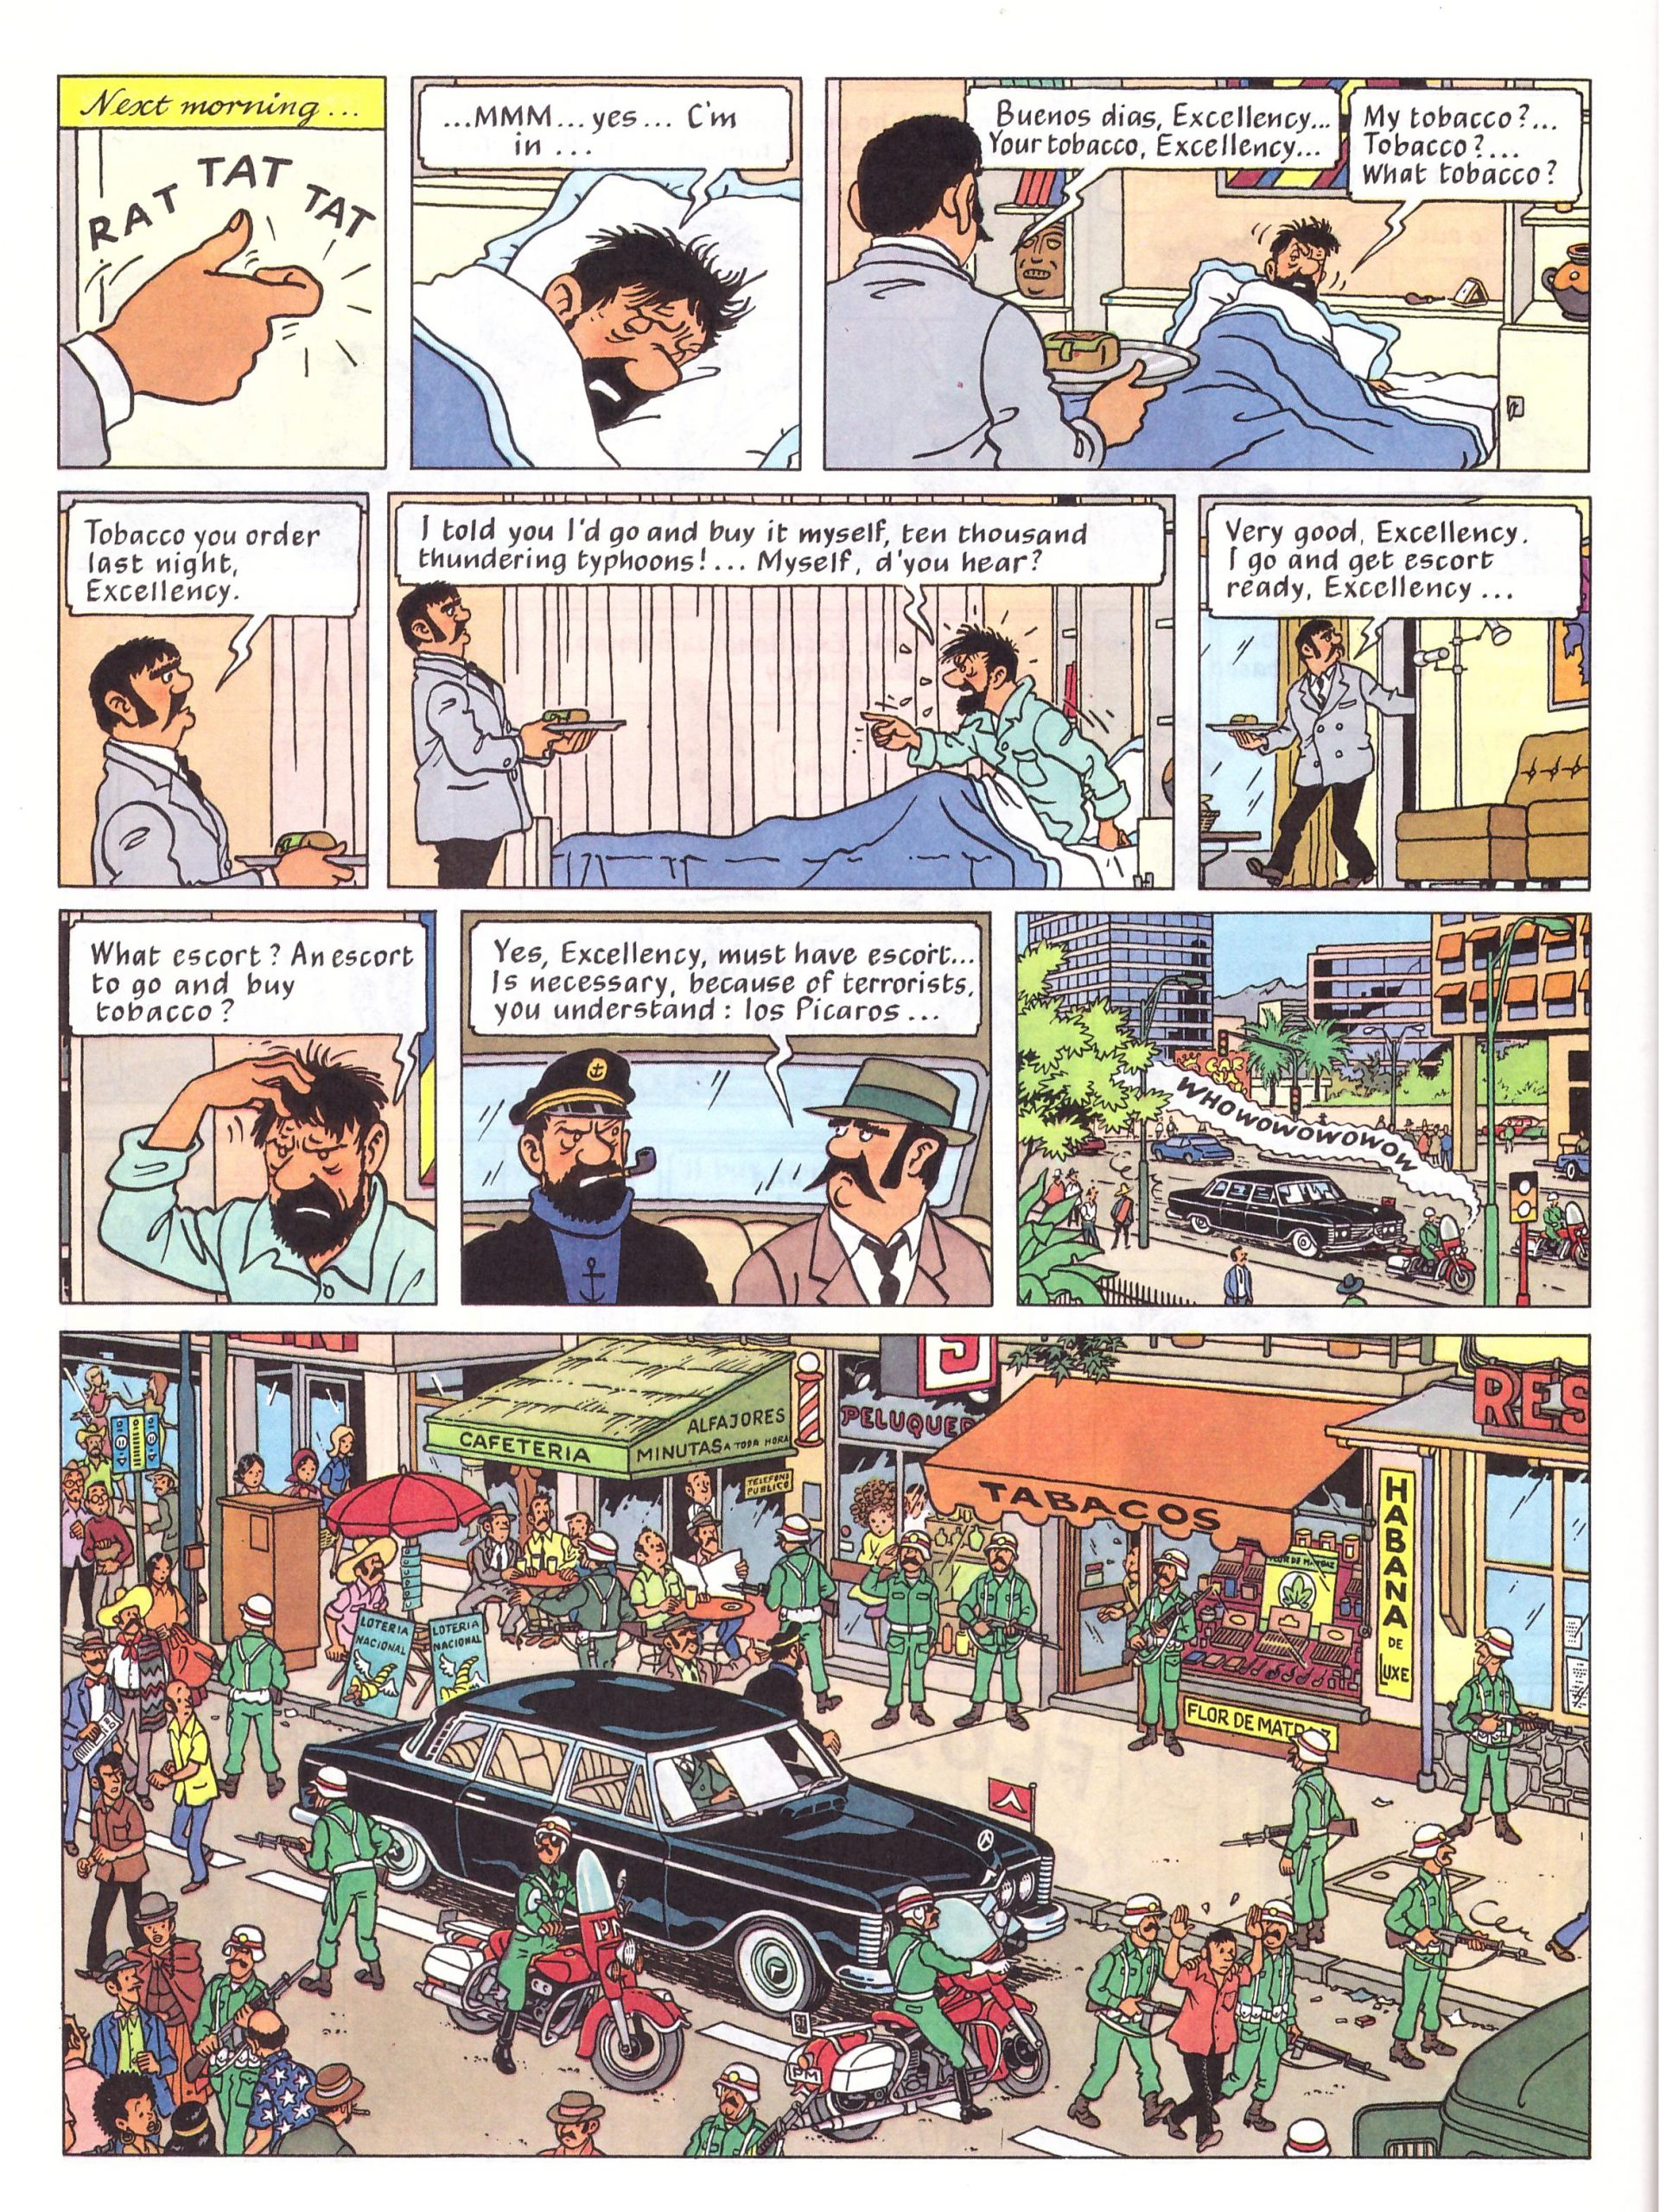 Tintin and the Picaros review